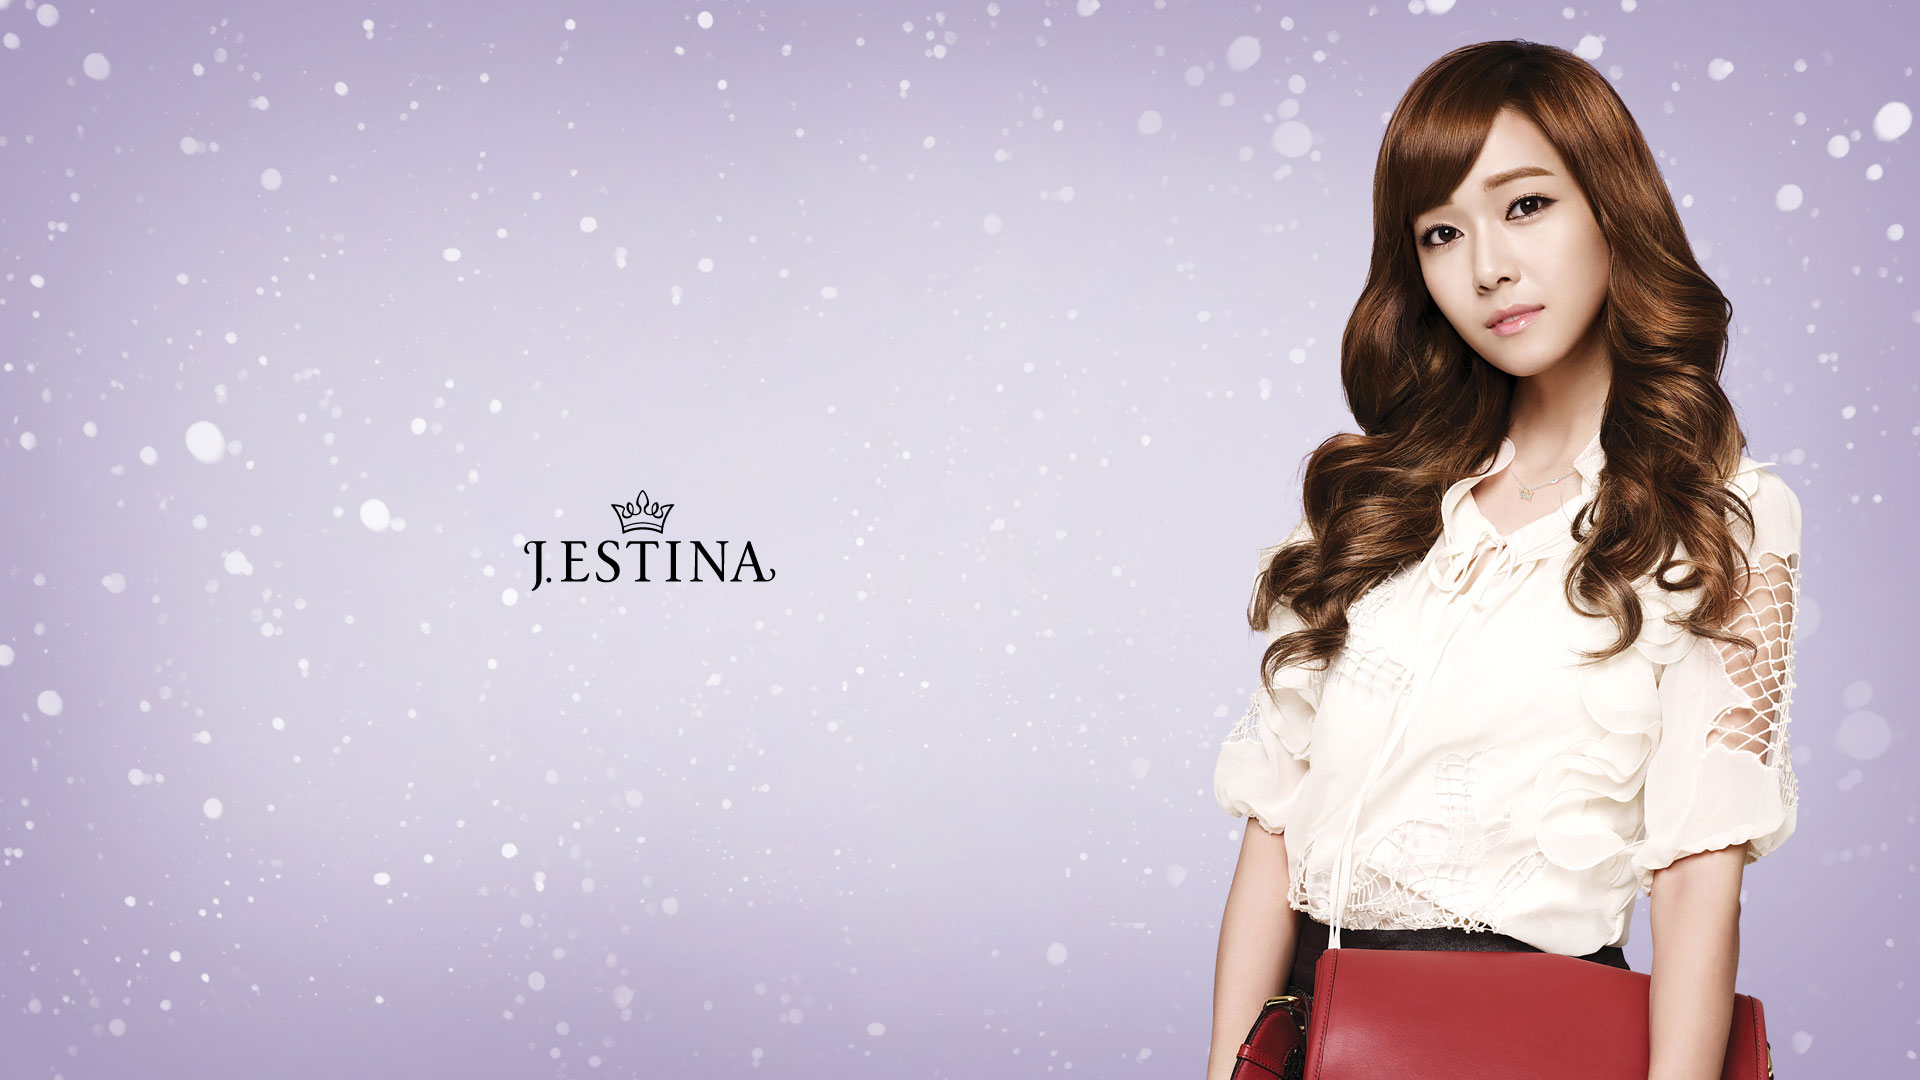 Korean Cute Girl Hd Wallpaper Snsd J Estina Winter Wallpapers Snsd Pics